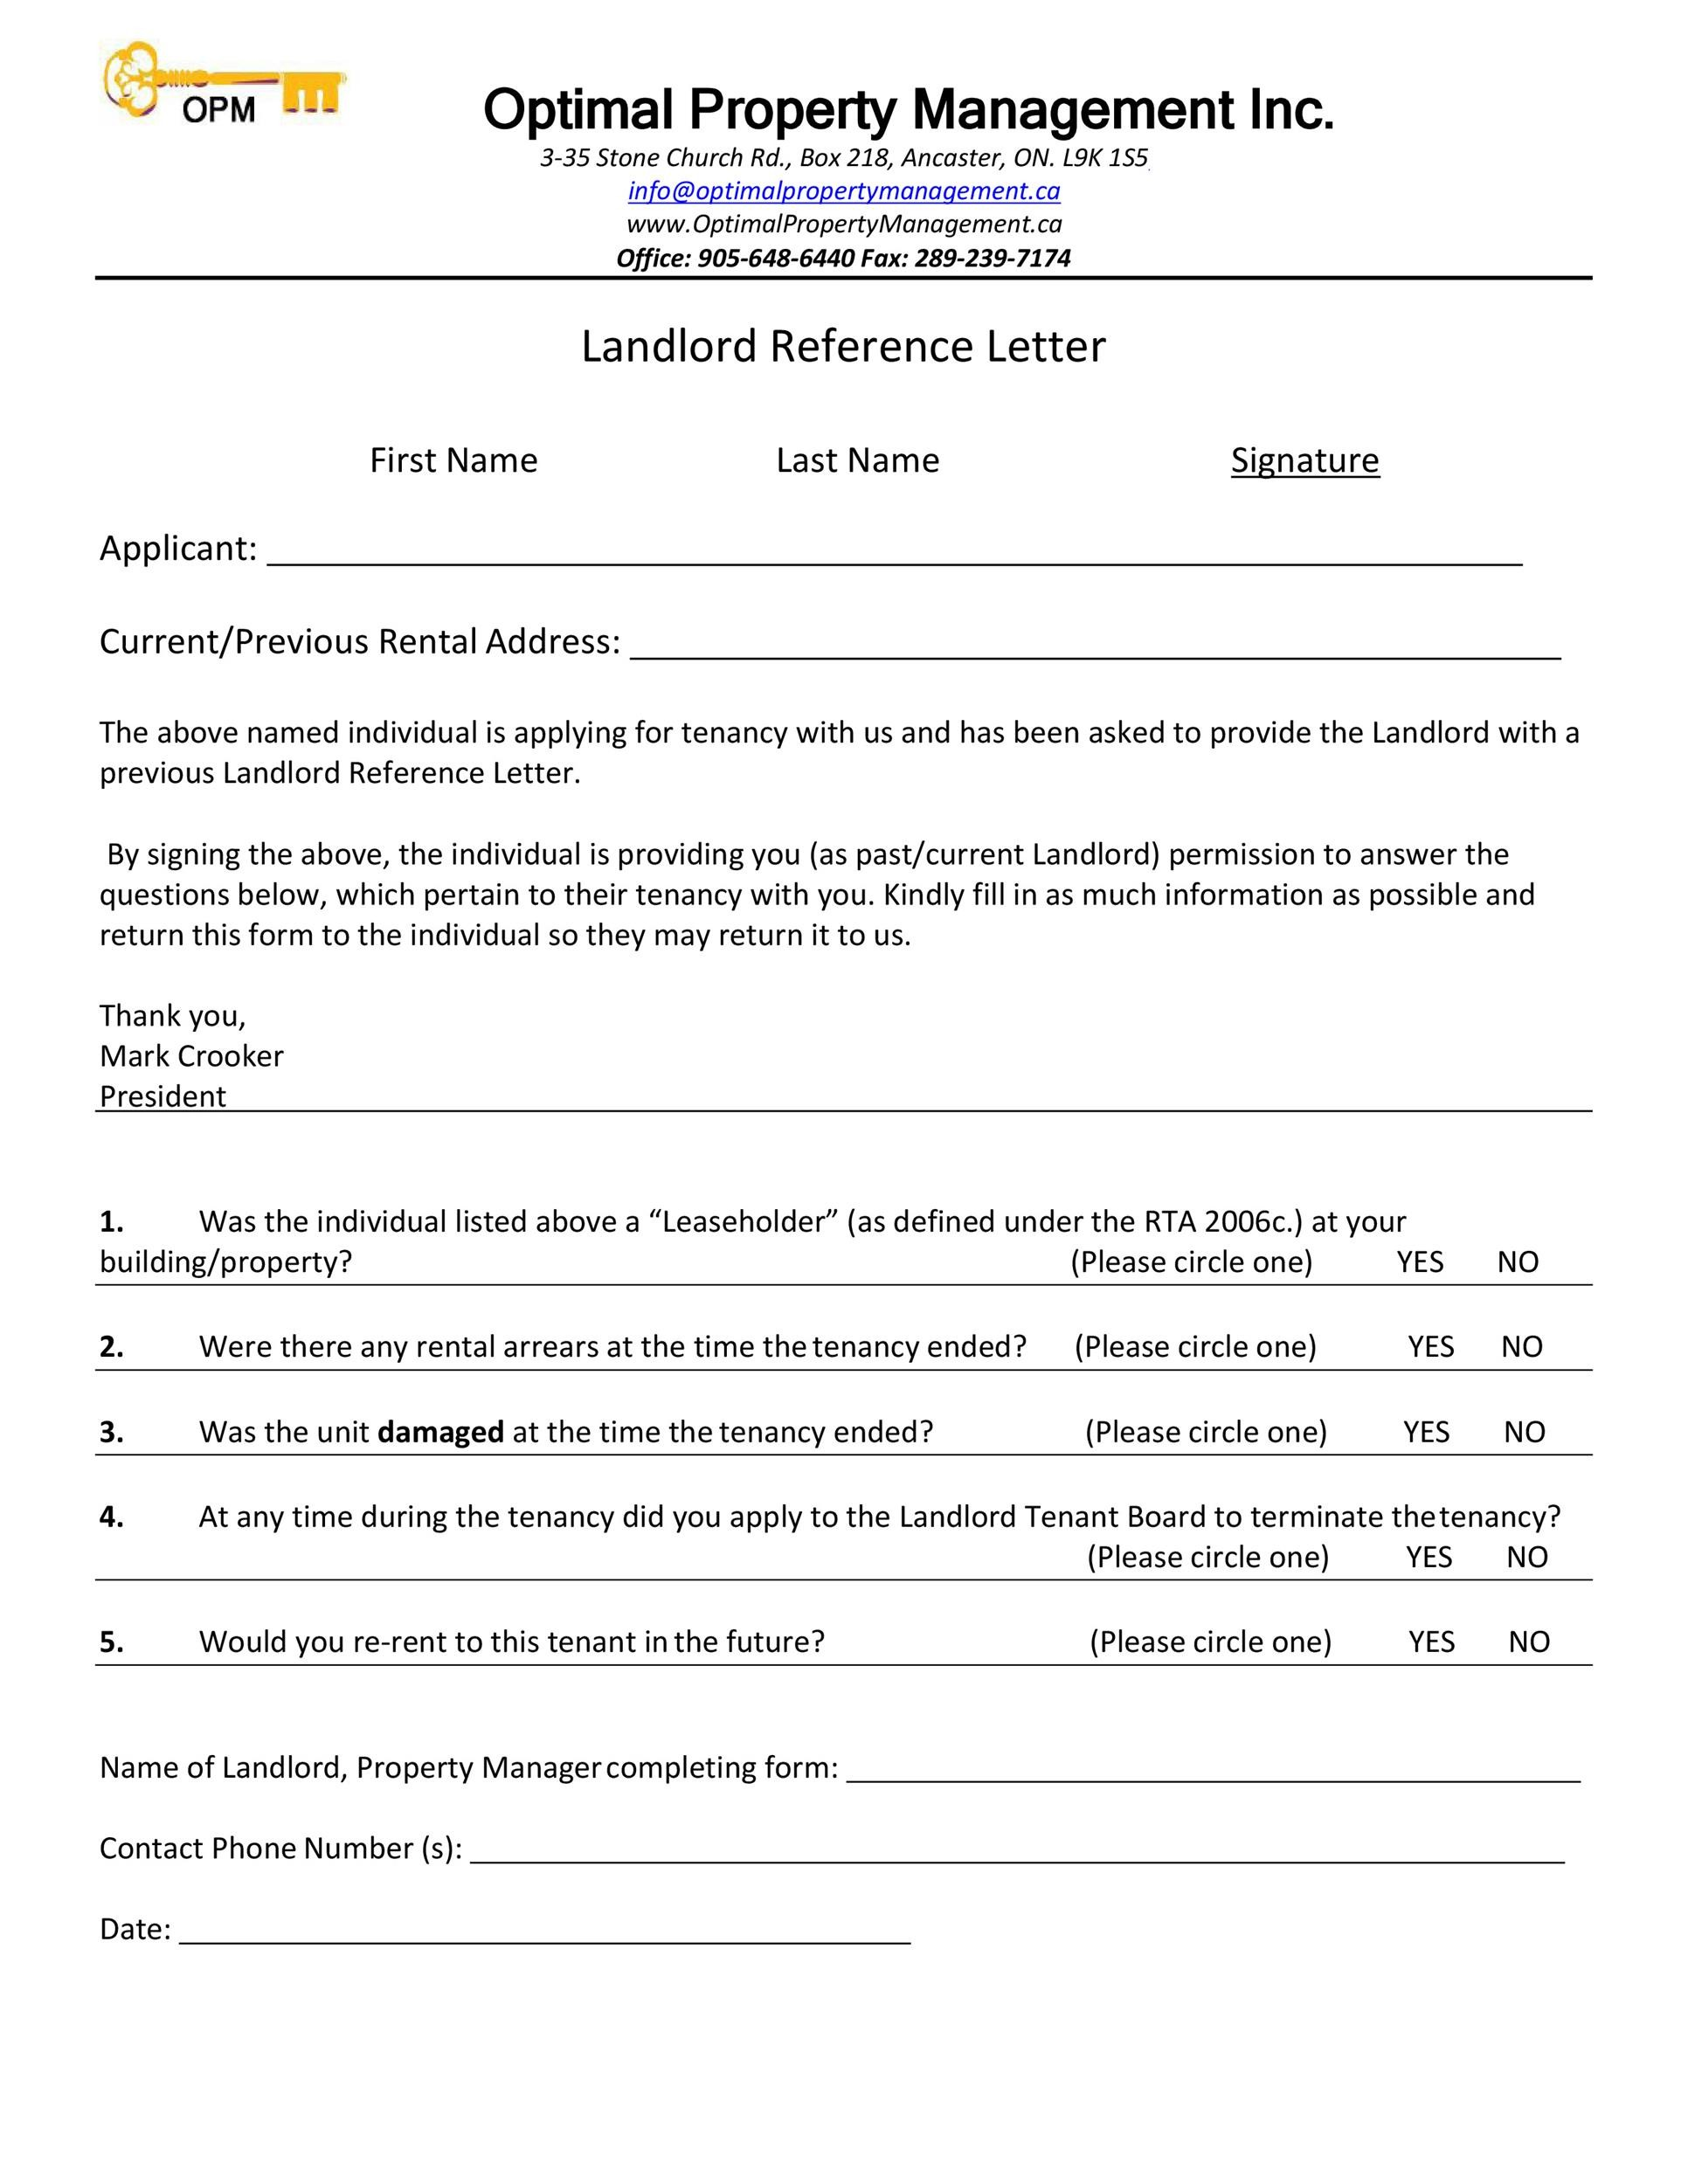 40+ Landlord Reference Letters & Form Samples - Template Lab